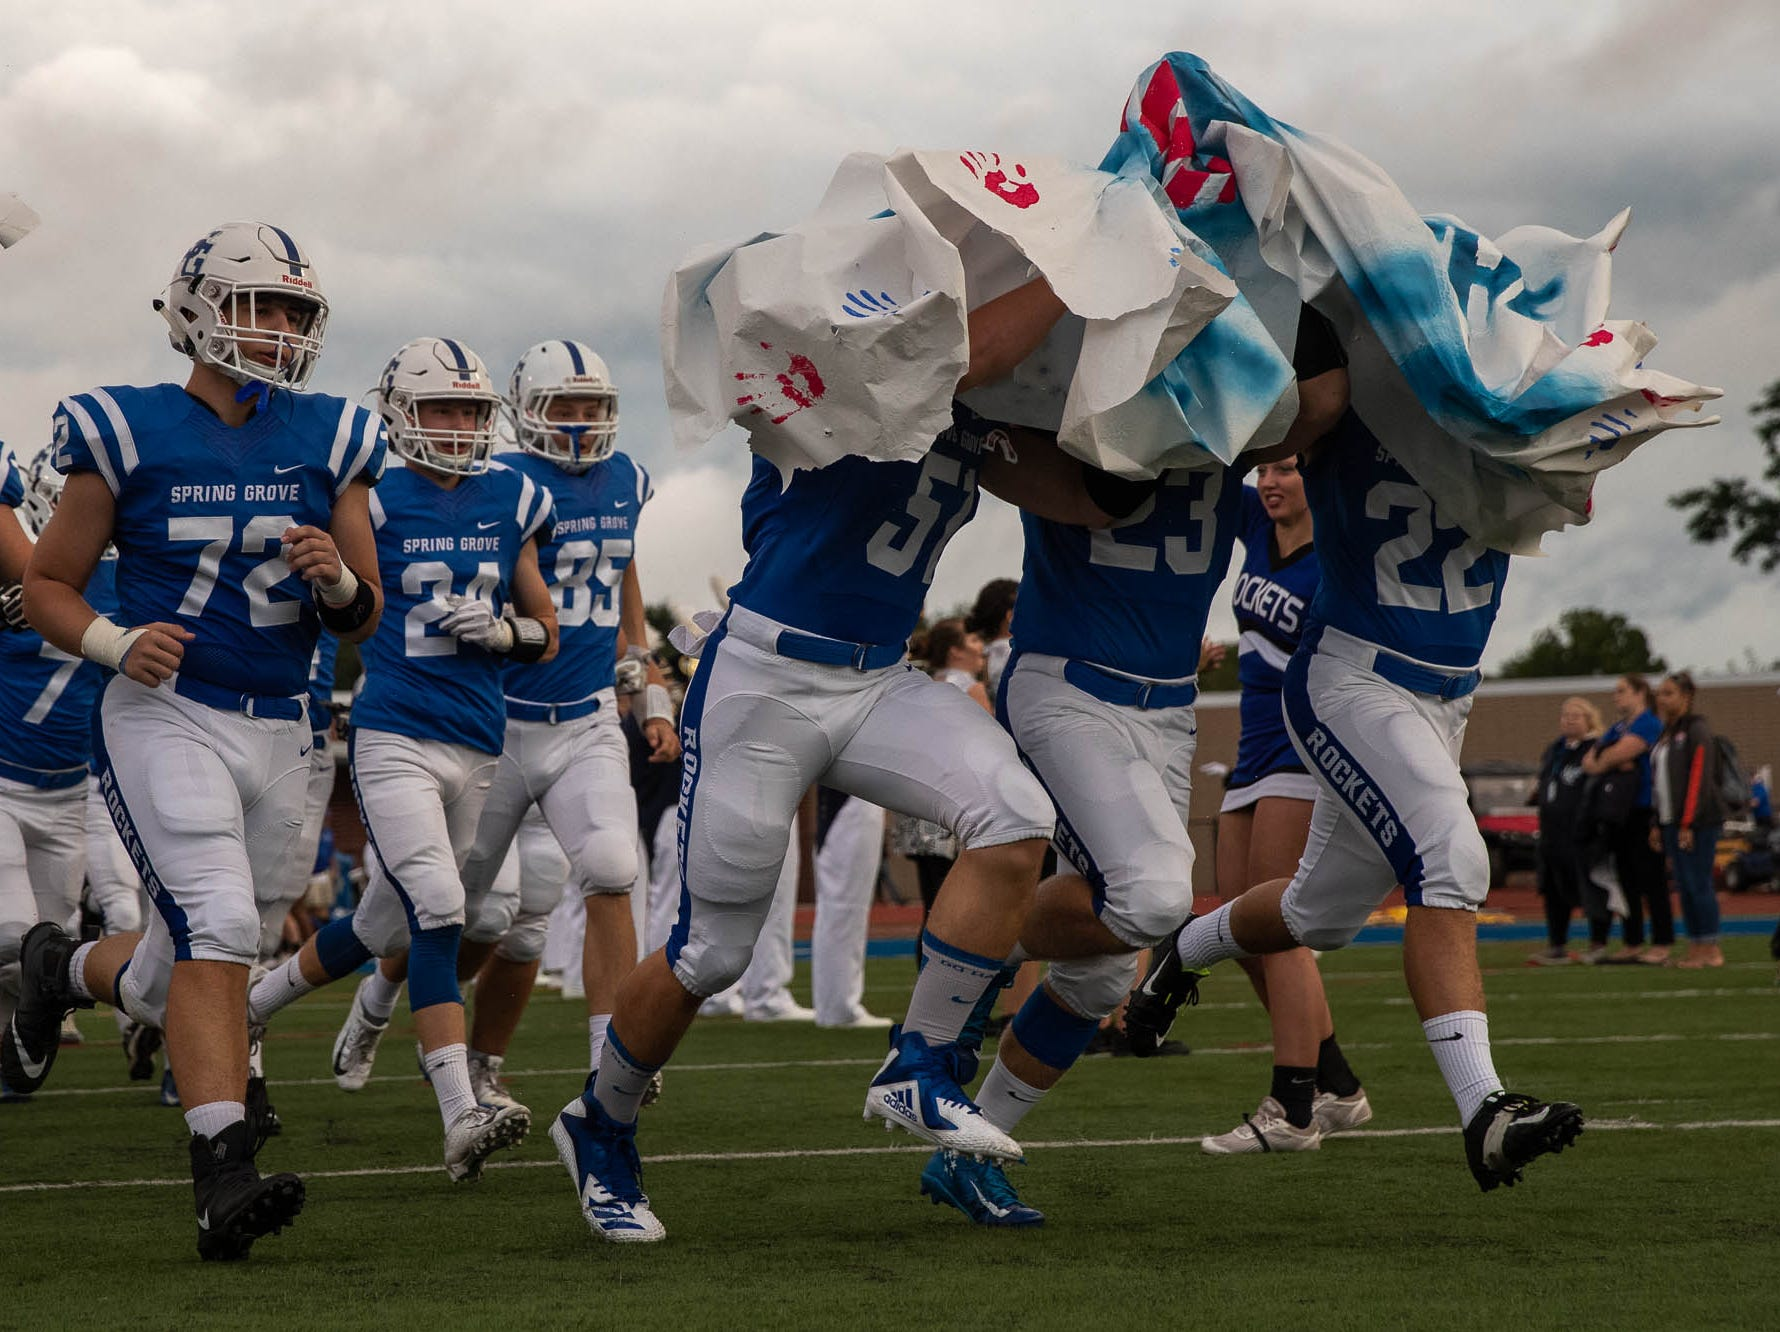 Spring Grove's Riley Merrill(51), Eric Glass Jr. (23), and Braden Brandt (22) get caught in the banner as they burst through it while entering the field for a football game between Muhlenberg and Spring Grove, Friday, Aug. 31, 2018, in Spring Grove.